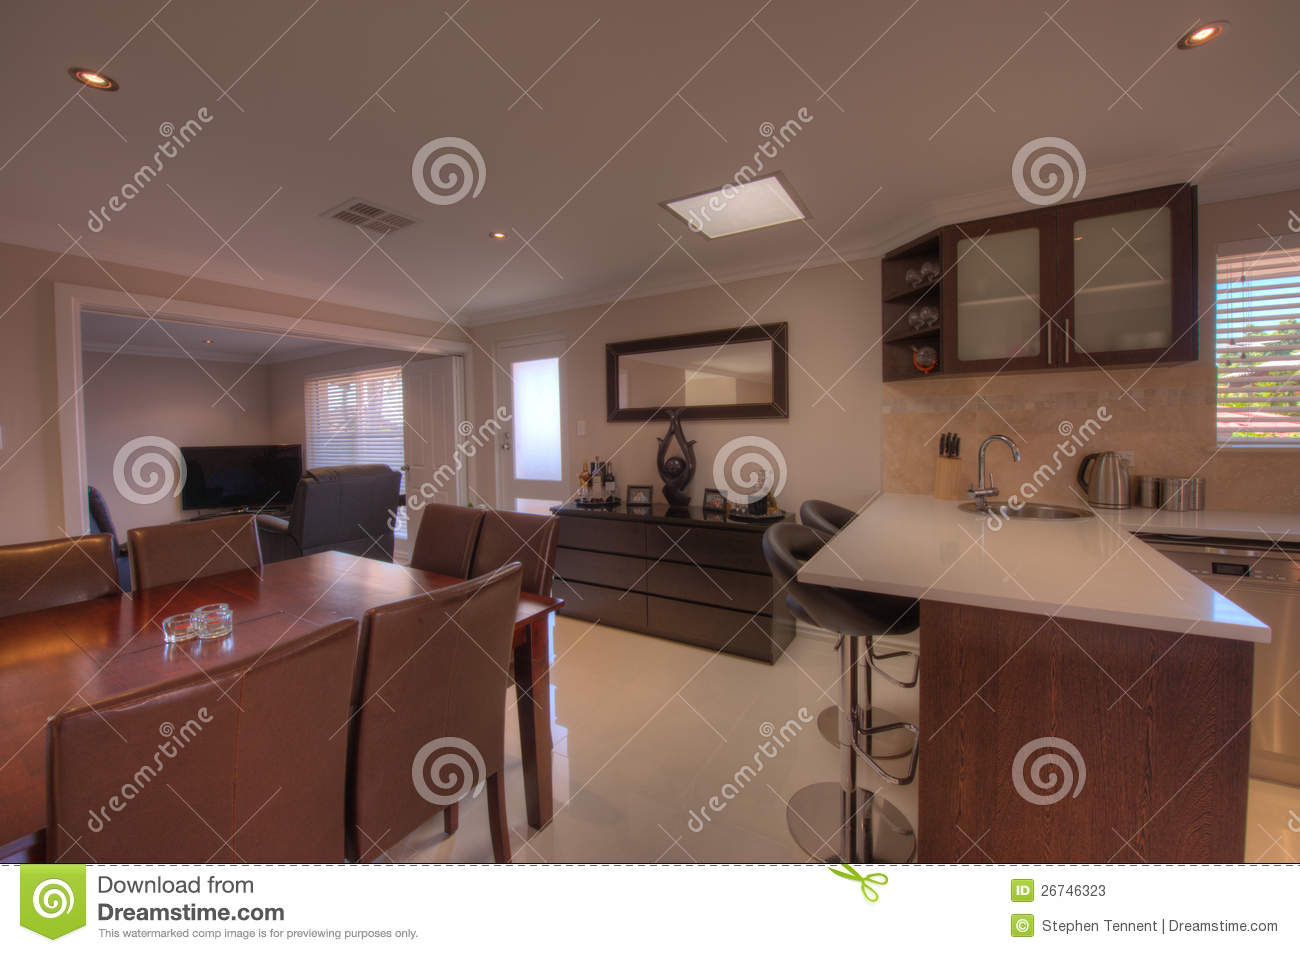 Kitchen and dining room in luxury home stock photos image 26746323 - Luxury kitchen room ...